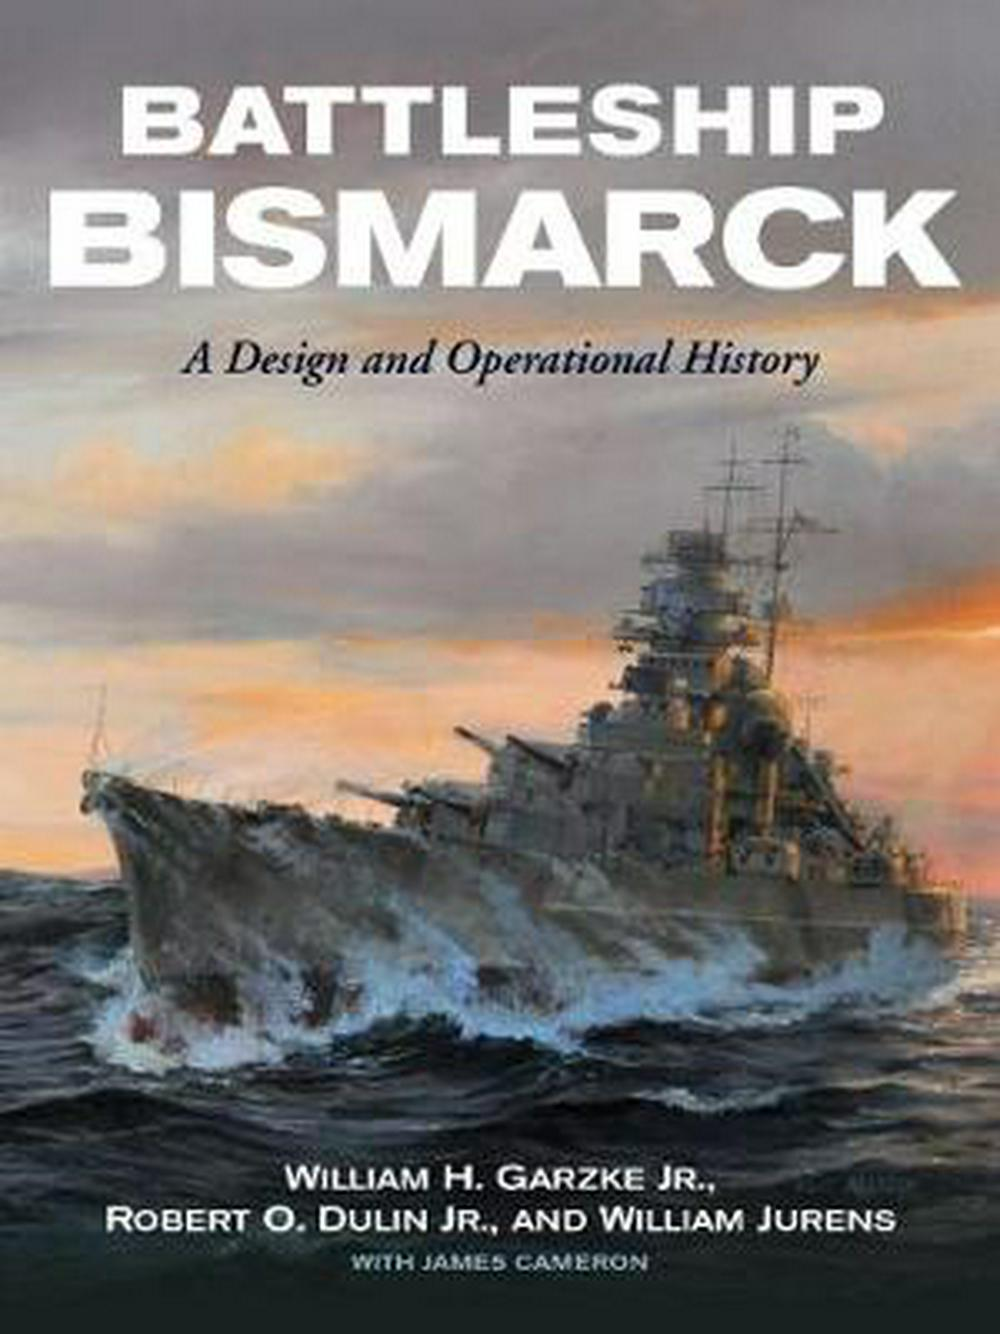 Battleship Bismarck: A Design and Operational History